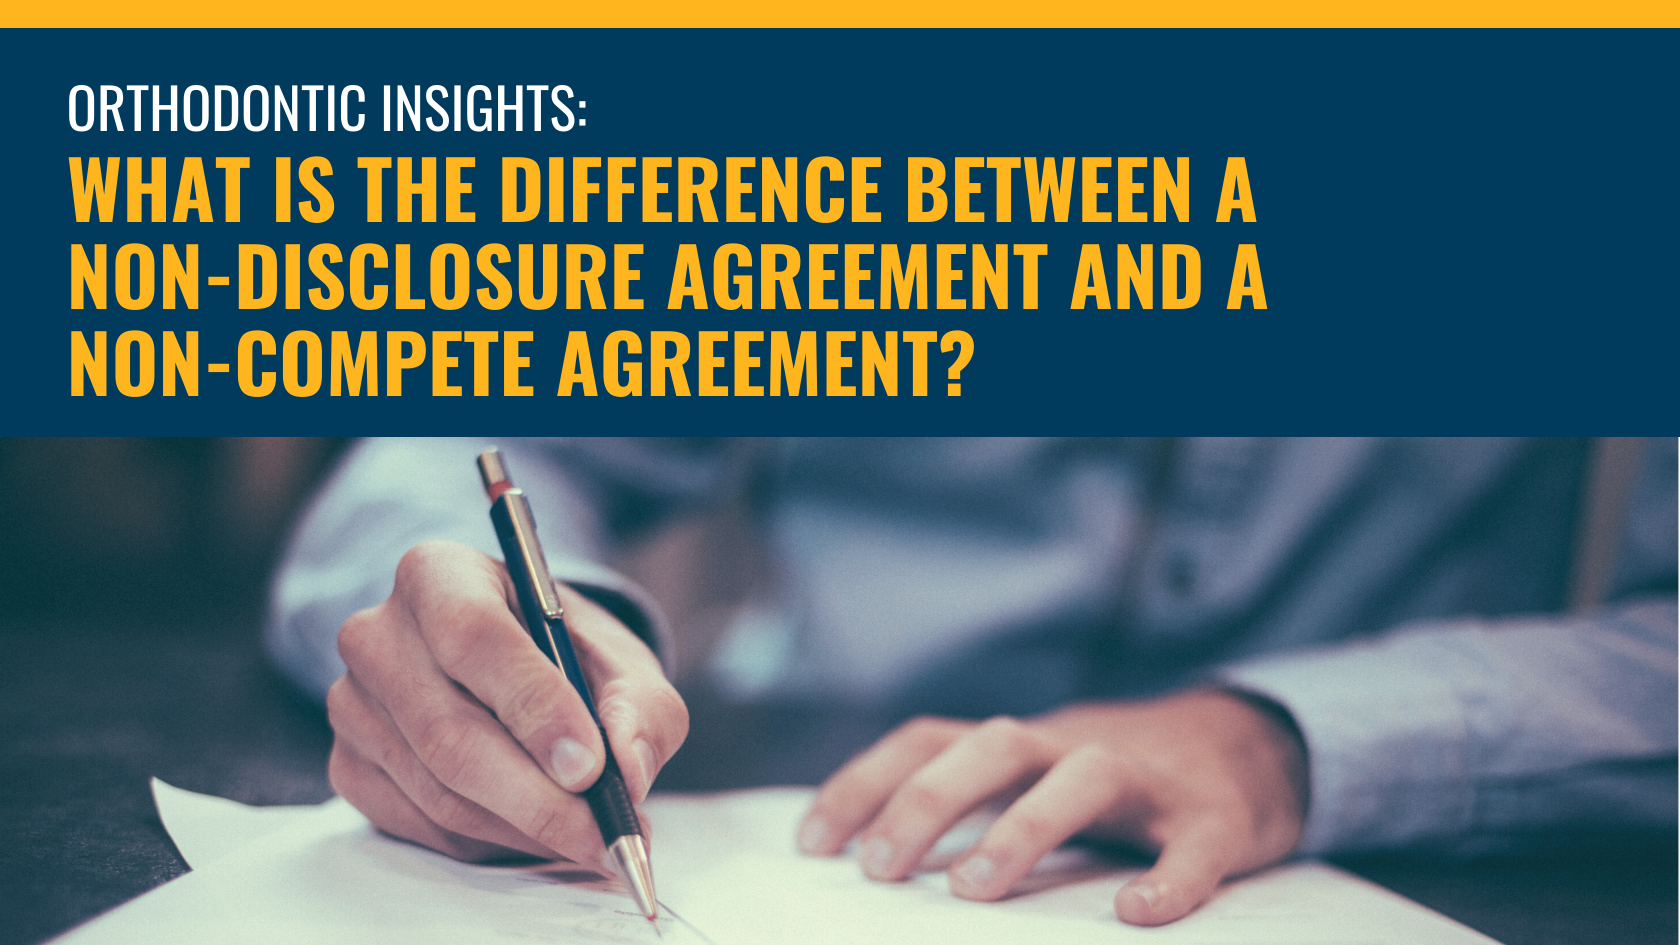 What Is the Difference Between a Non-Disclosure Agreement and a Non-Compete Agreement?